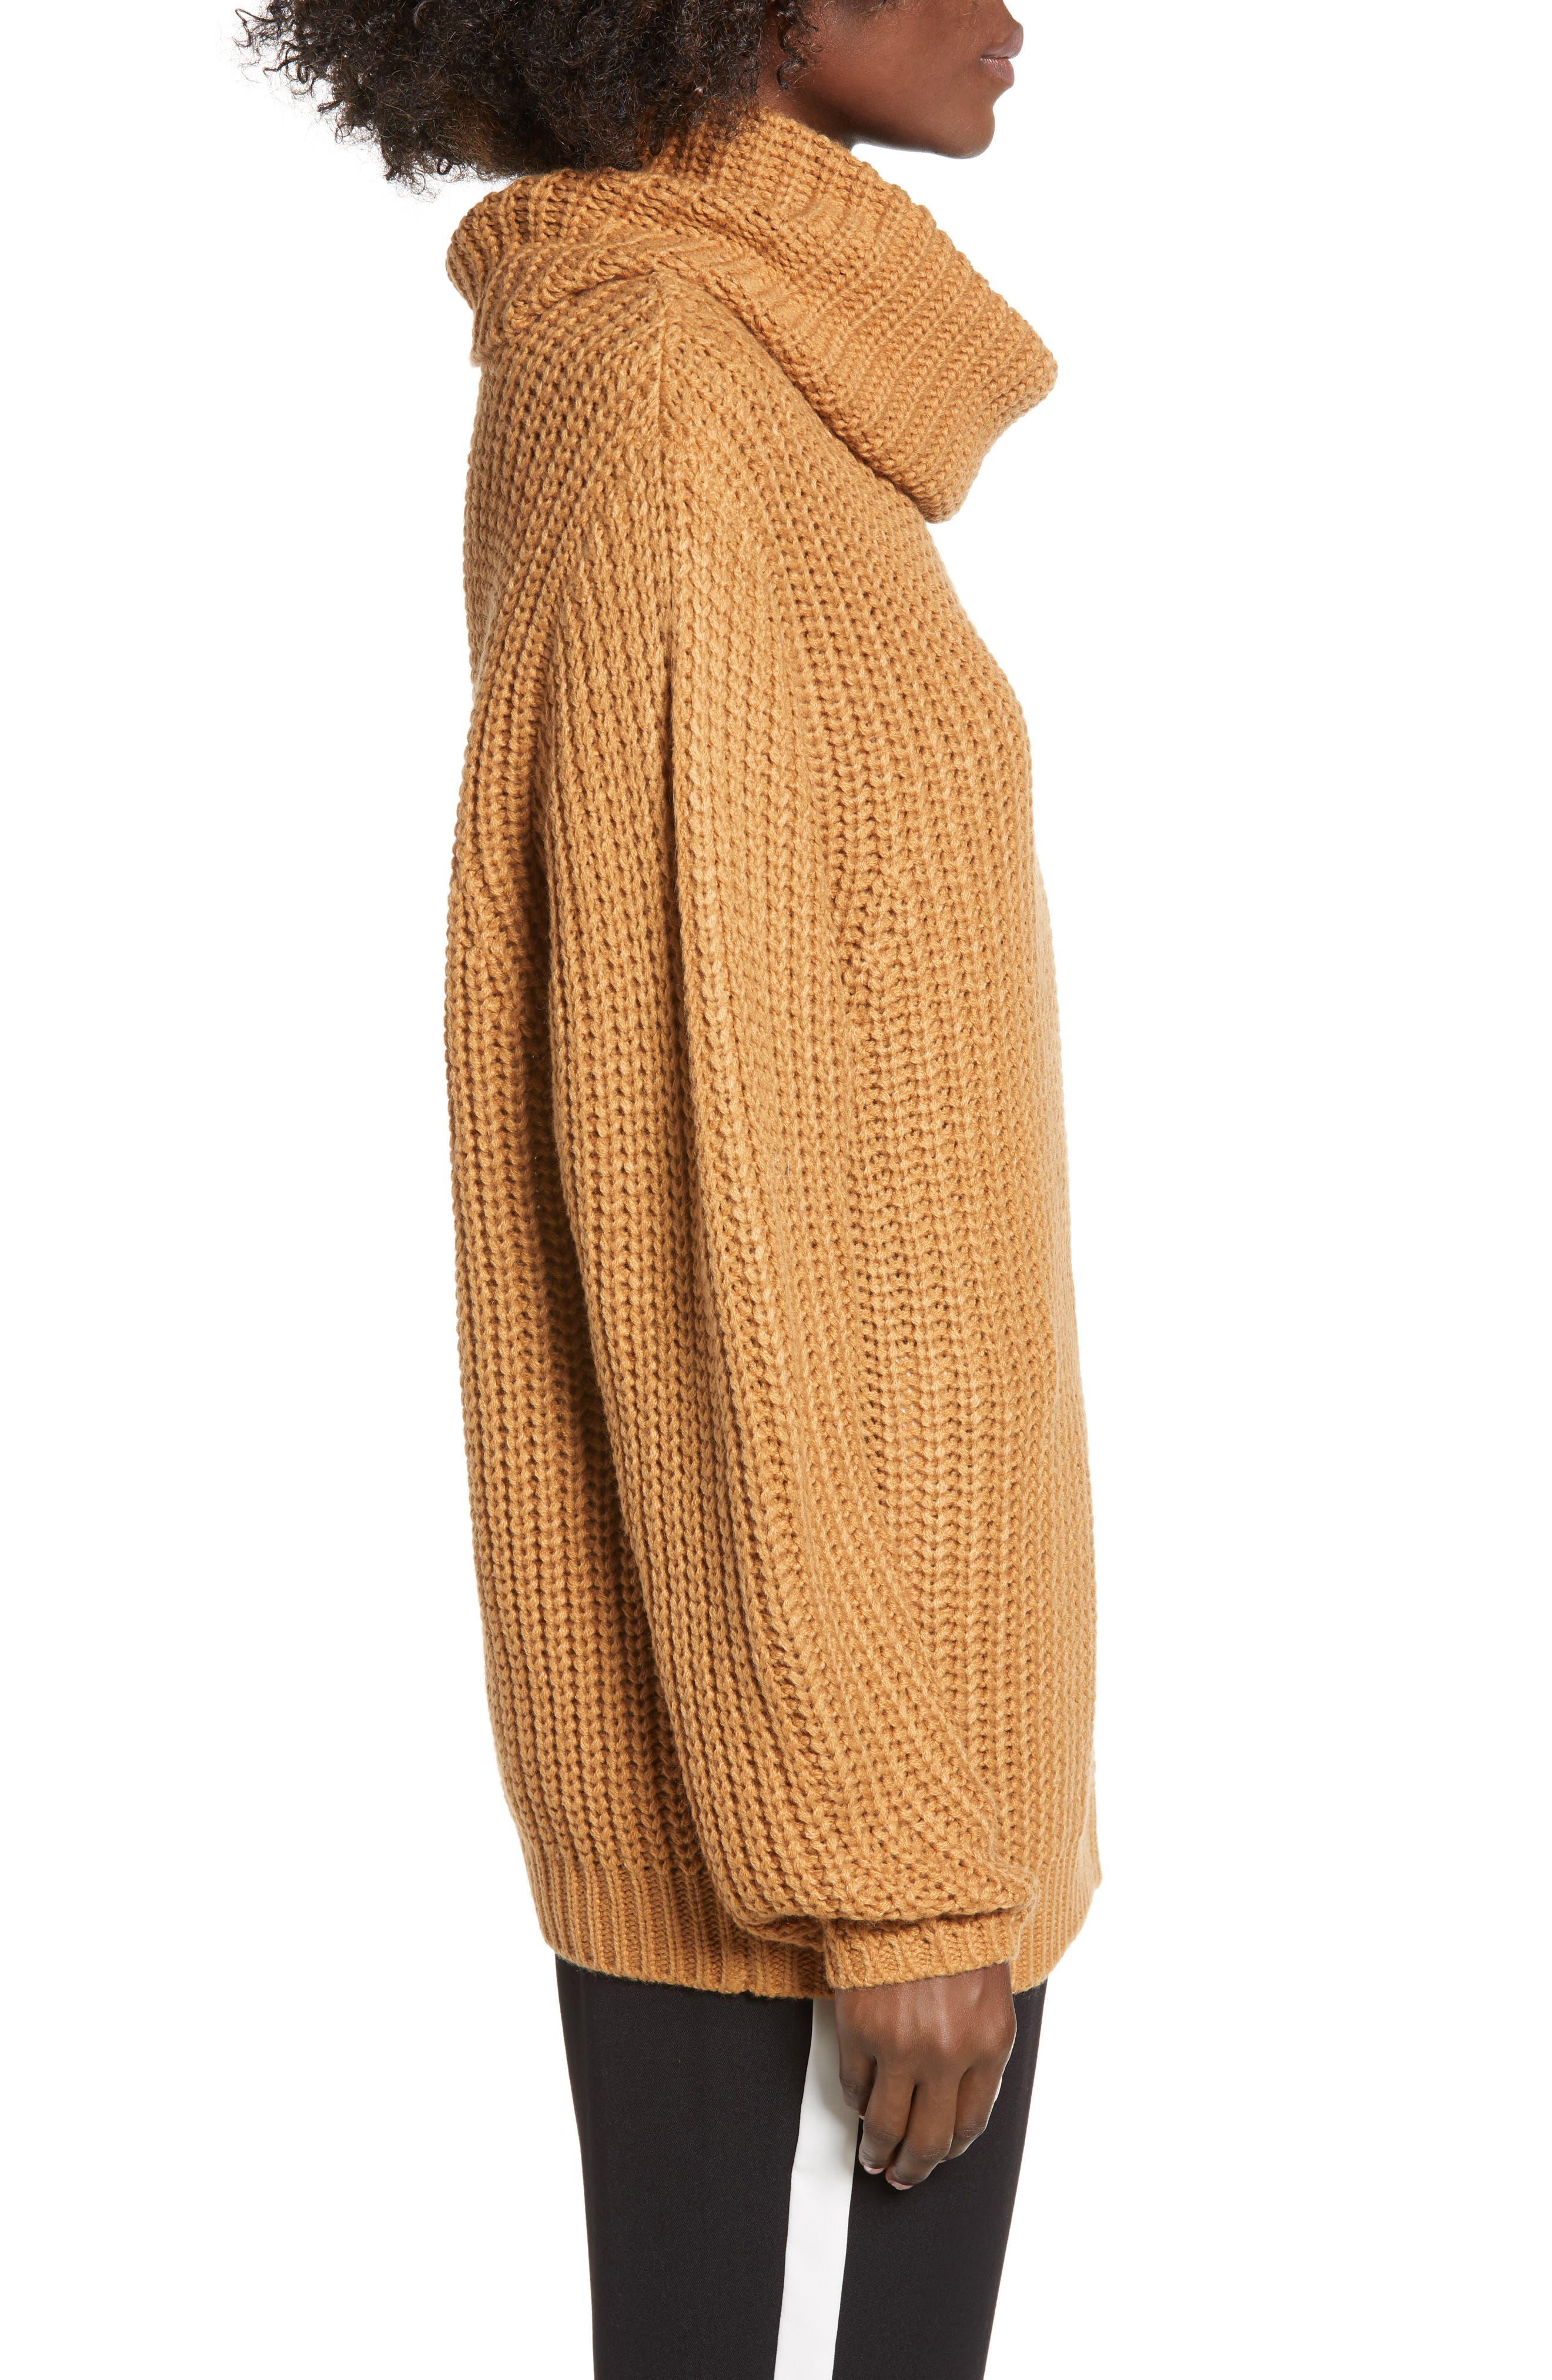 LEITH, Oversize Turtleneck Sweater, Alternate thumbnail 3, color, 235